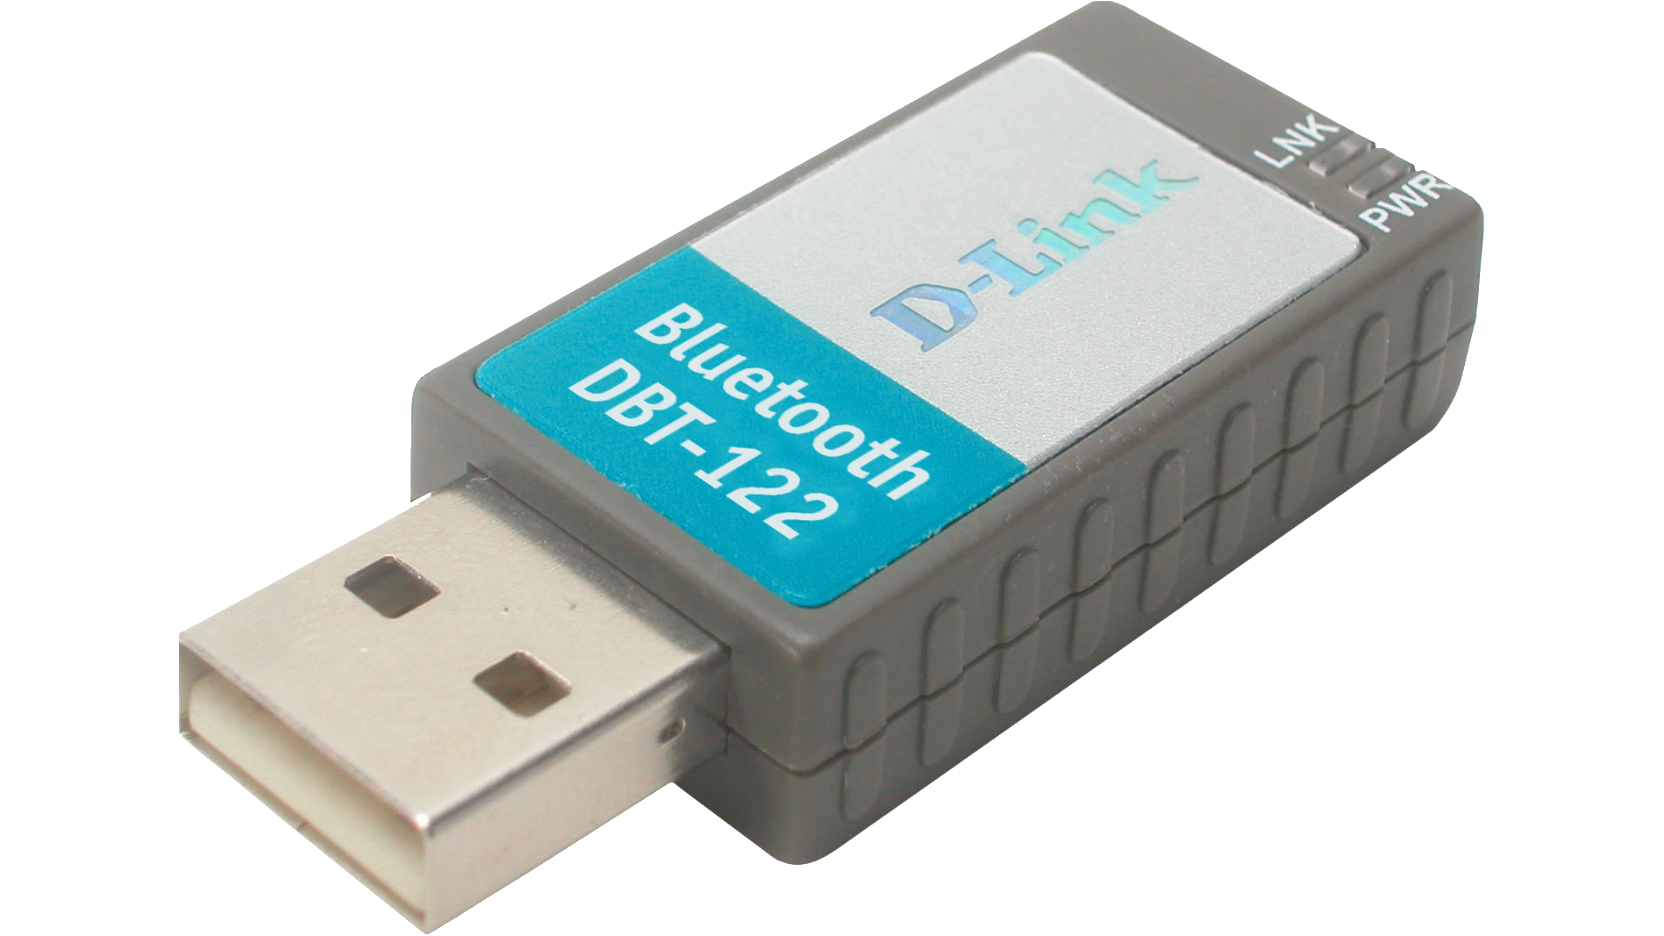 DBT-122 Wireless USB Bluetooth Adapter | D-Link Italia